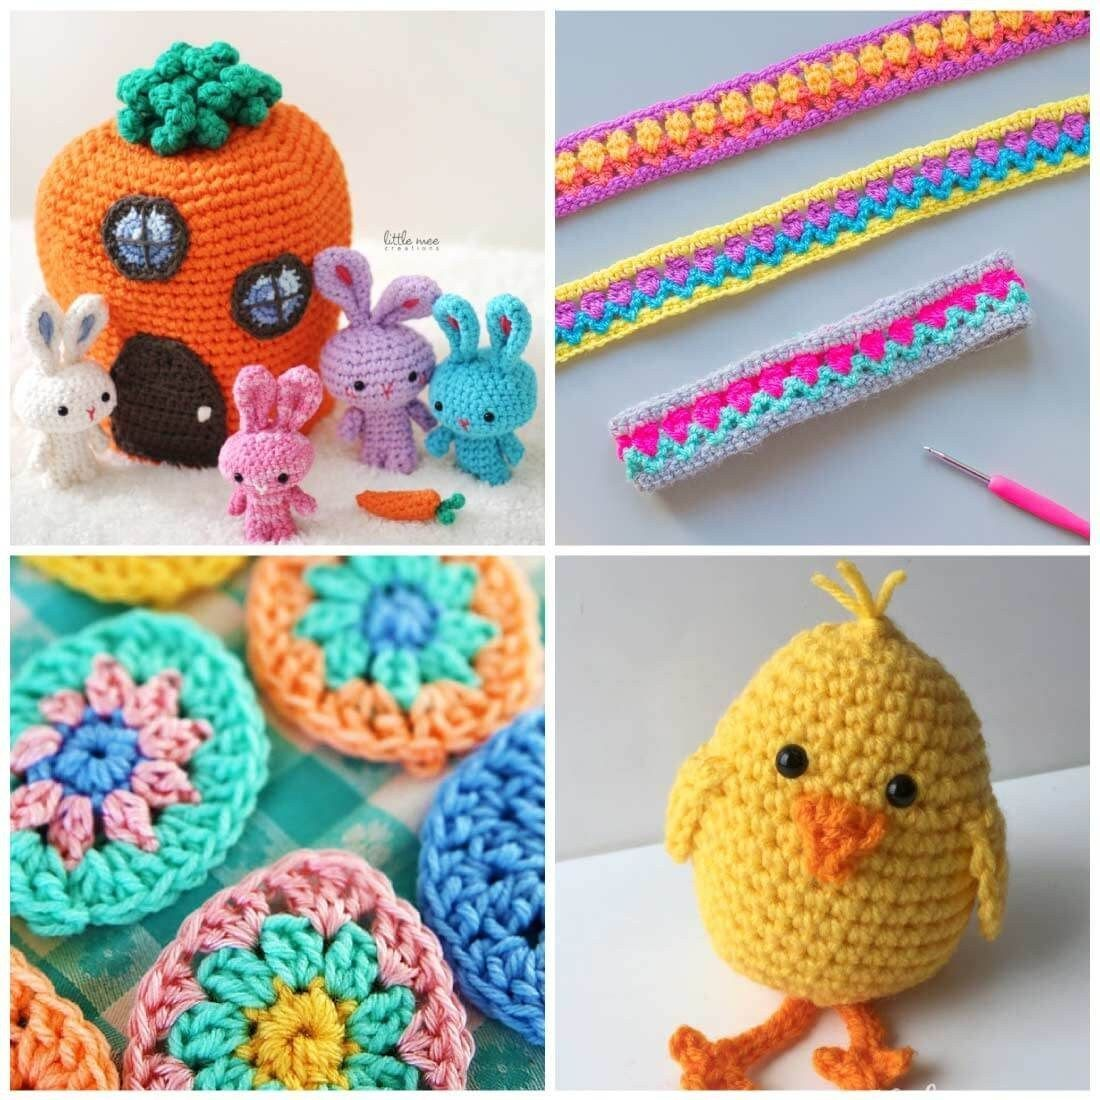 30+ Amazing Photo of Easter Crochet Patterns #eastercrochetpatterns 30+ Amazing Photo of Easter Crochet Patterns - vanessaharding.com #eastercrochetpatterns